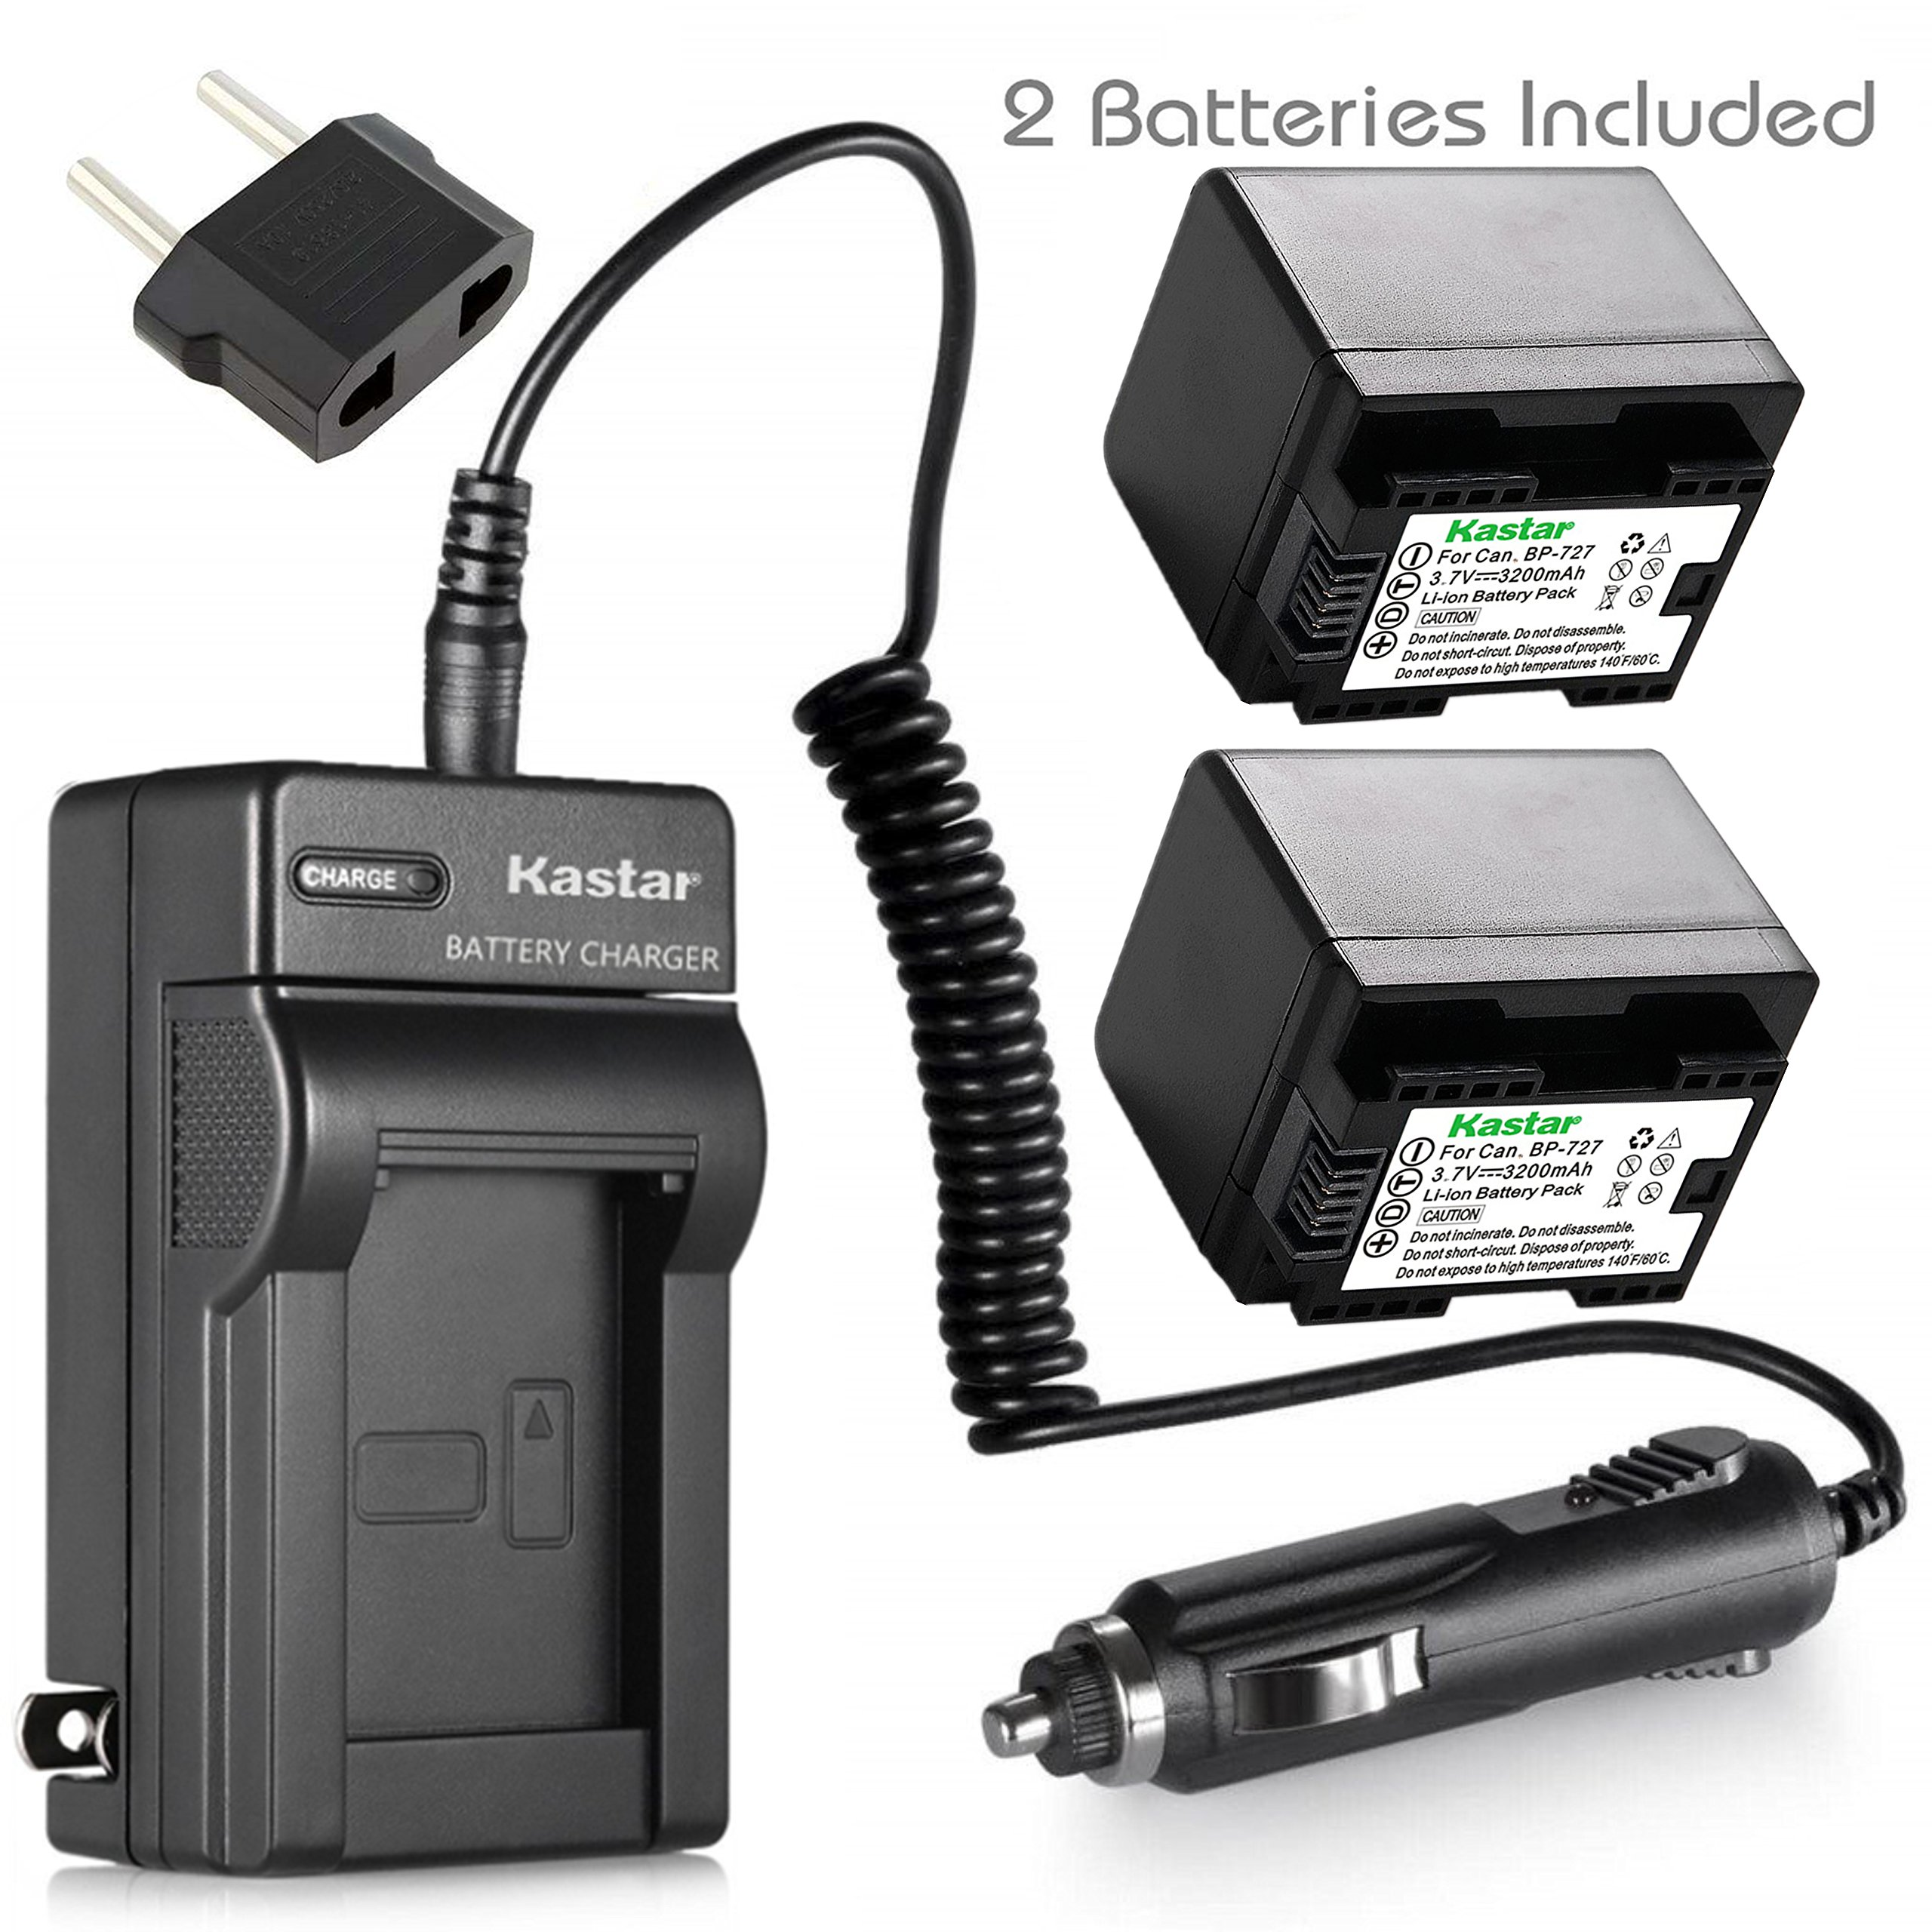 Kastar (FULLY DECODED) Battery (2-Pack) + Charger for Canon BP-727 and VIXIA HF M50, HF M52, HF M500, HF R30, HF R32, HF R40, HF R42, HF R50, HF R52, HF R60, HF R62, HF R300, HF R400, HF R500, HF R600